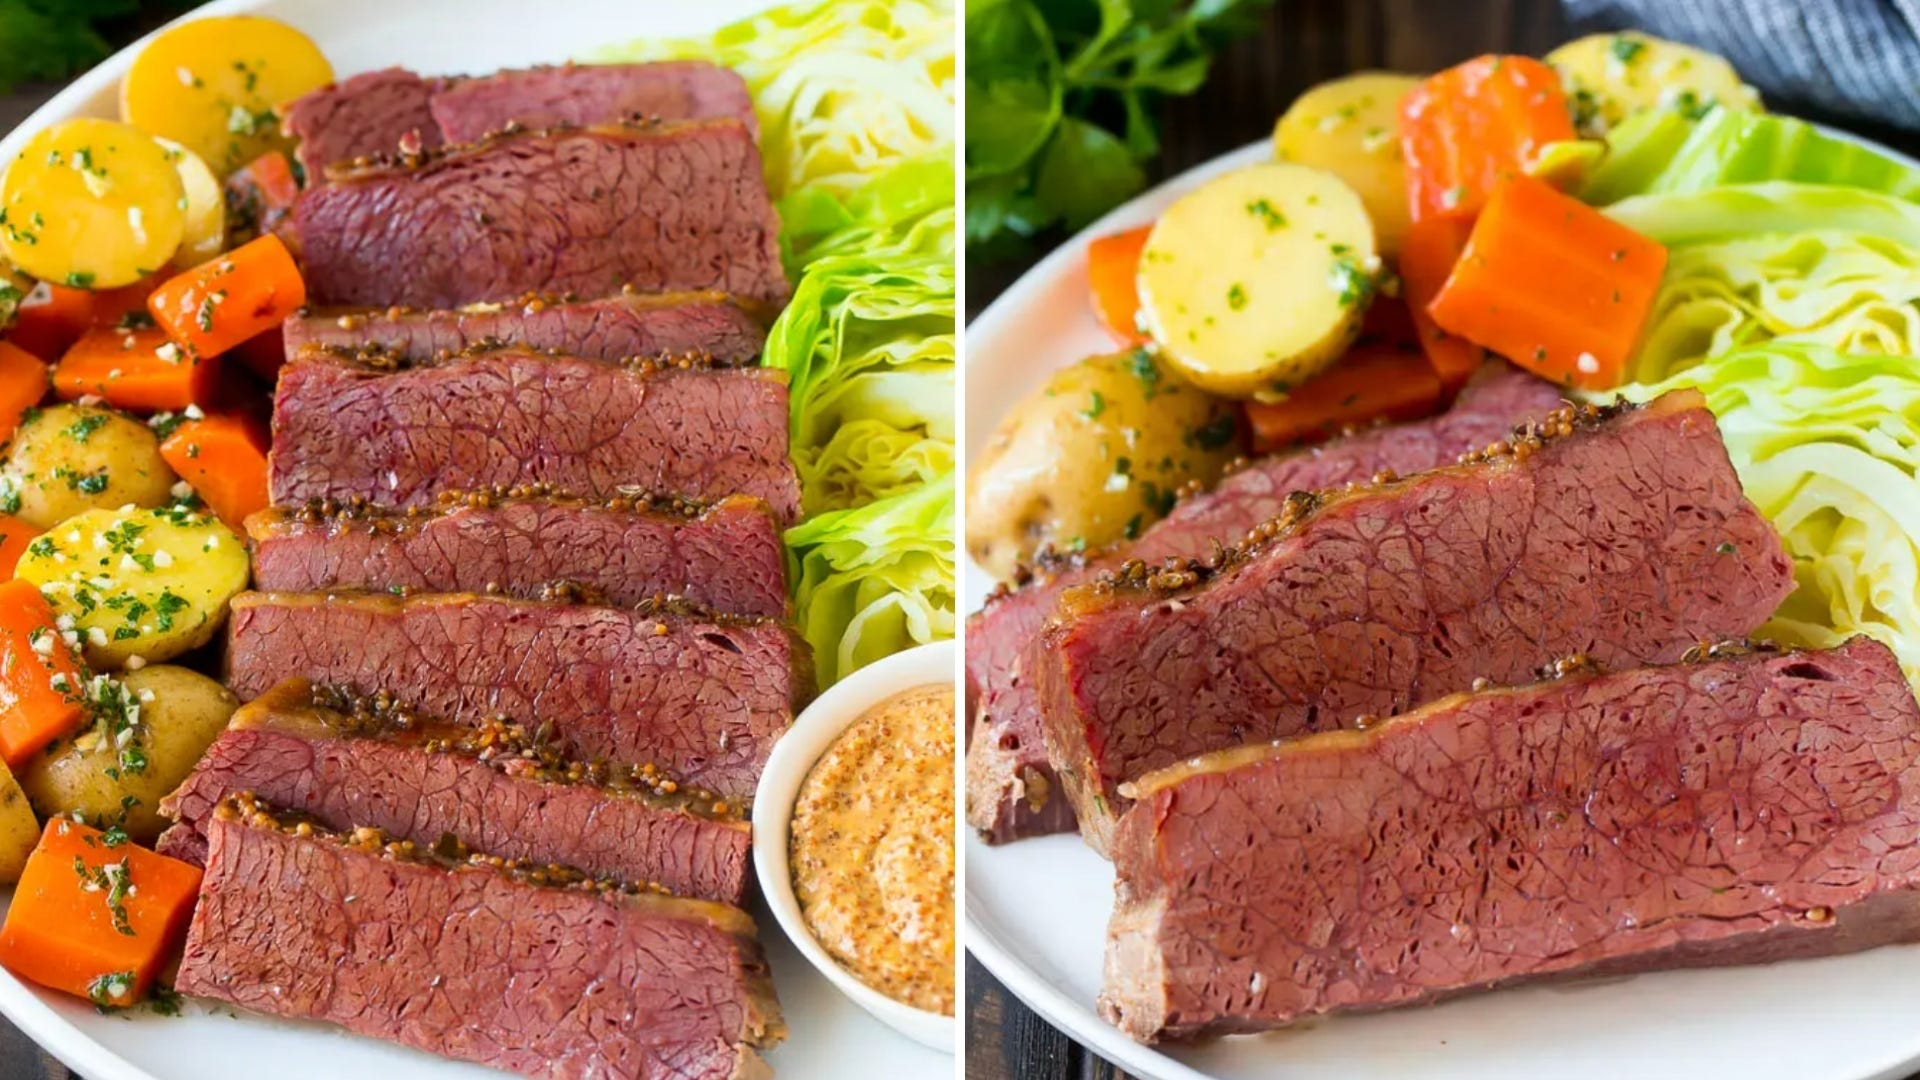 Sliced corned beef and cabbage on a white platter.